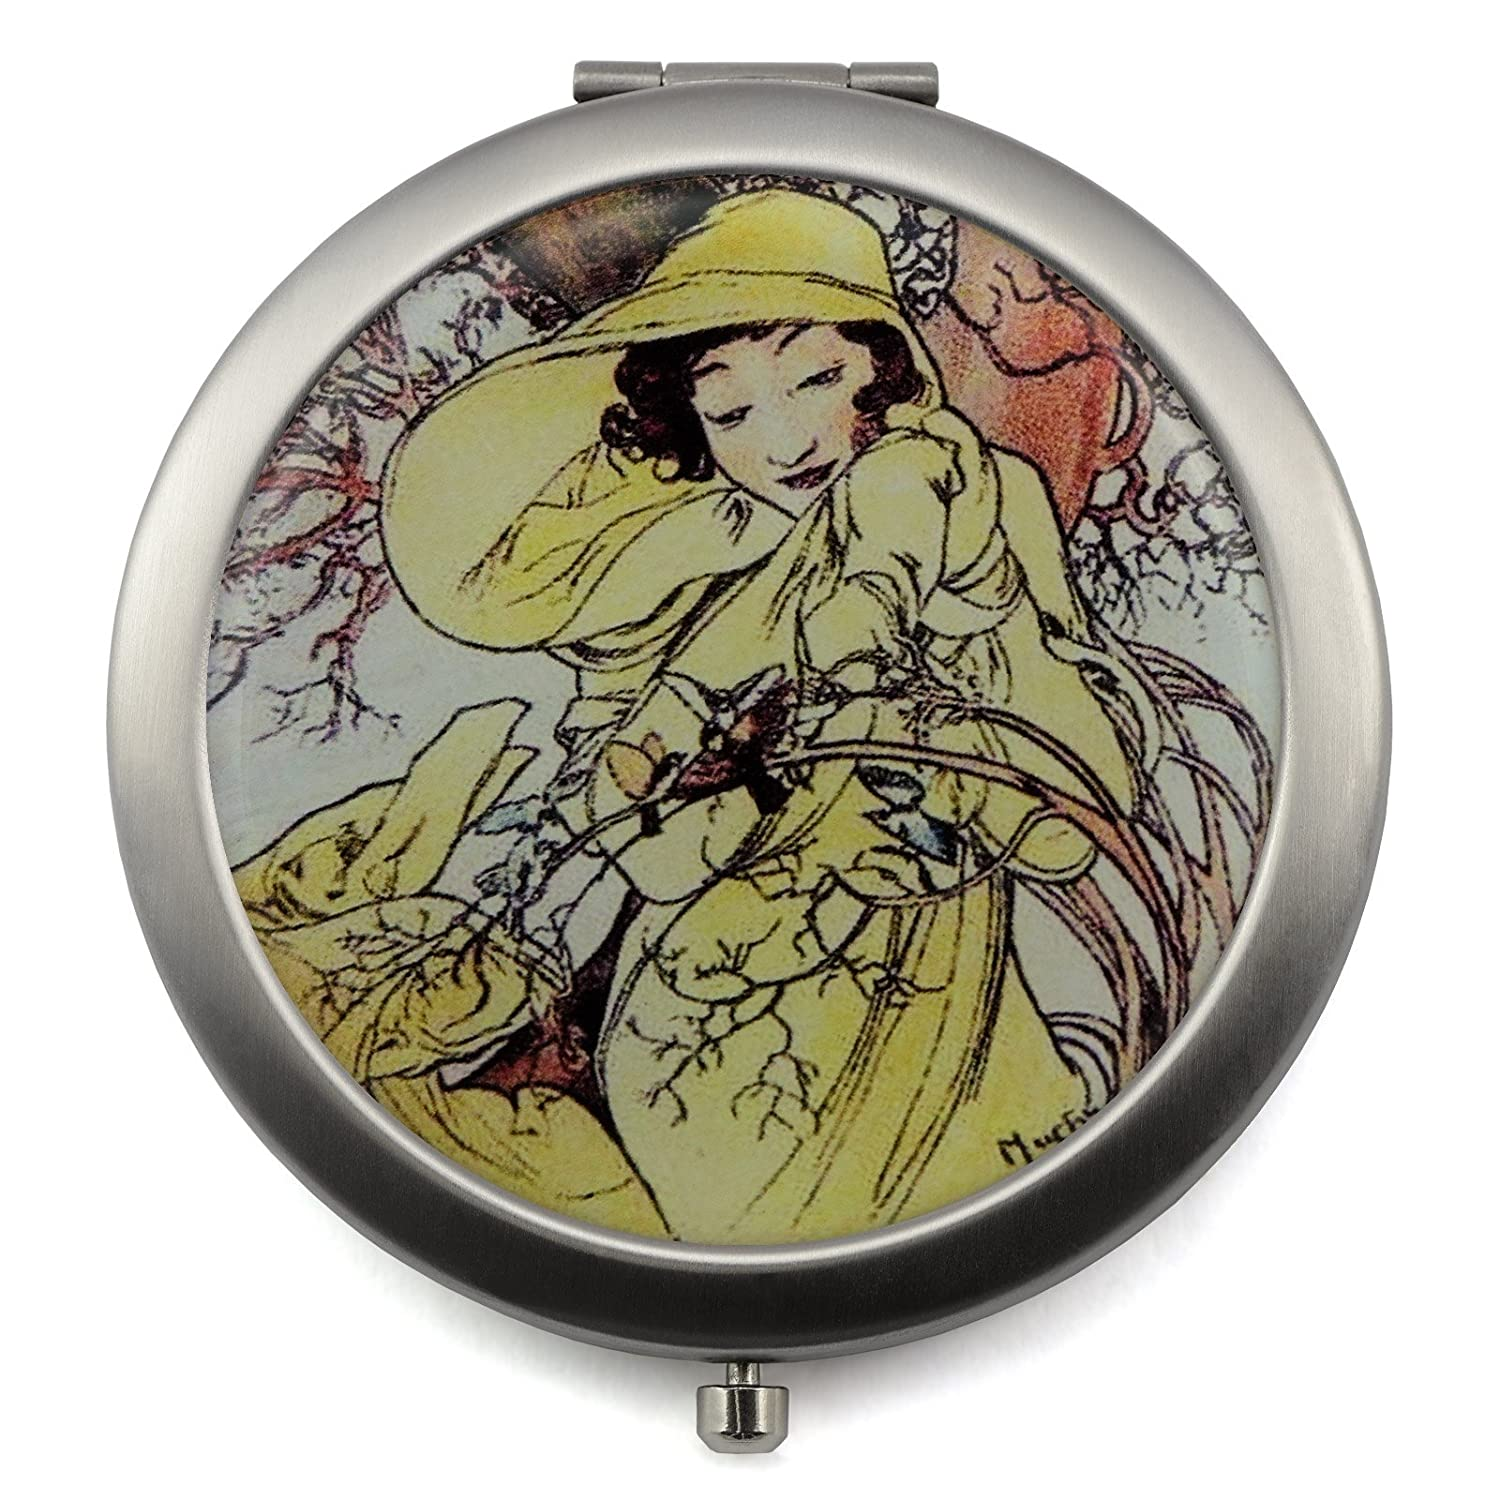 Compact Mirror with Vintage Four Seasons Sign Design Pocket Makeup Mirror – Perfect for Purses Travel 2-sided with 2X Magnifying Mirror and 1x Mirror